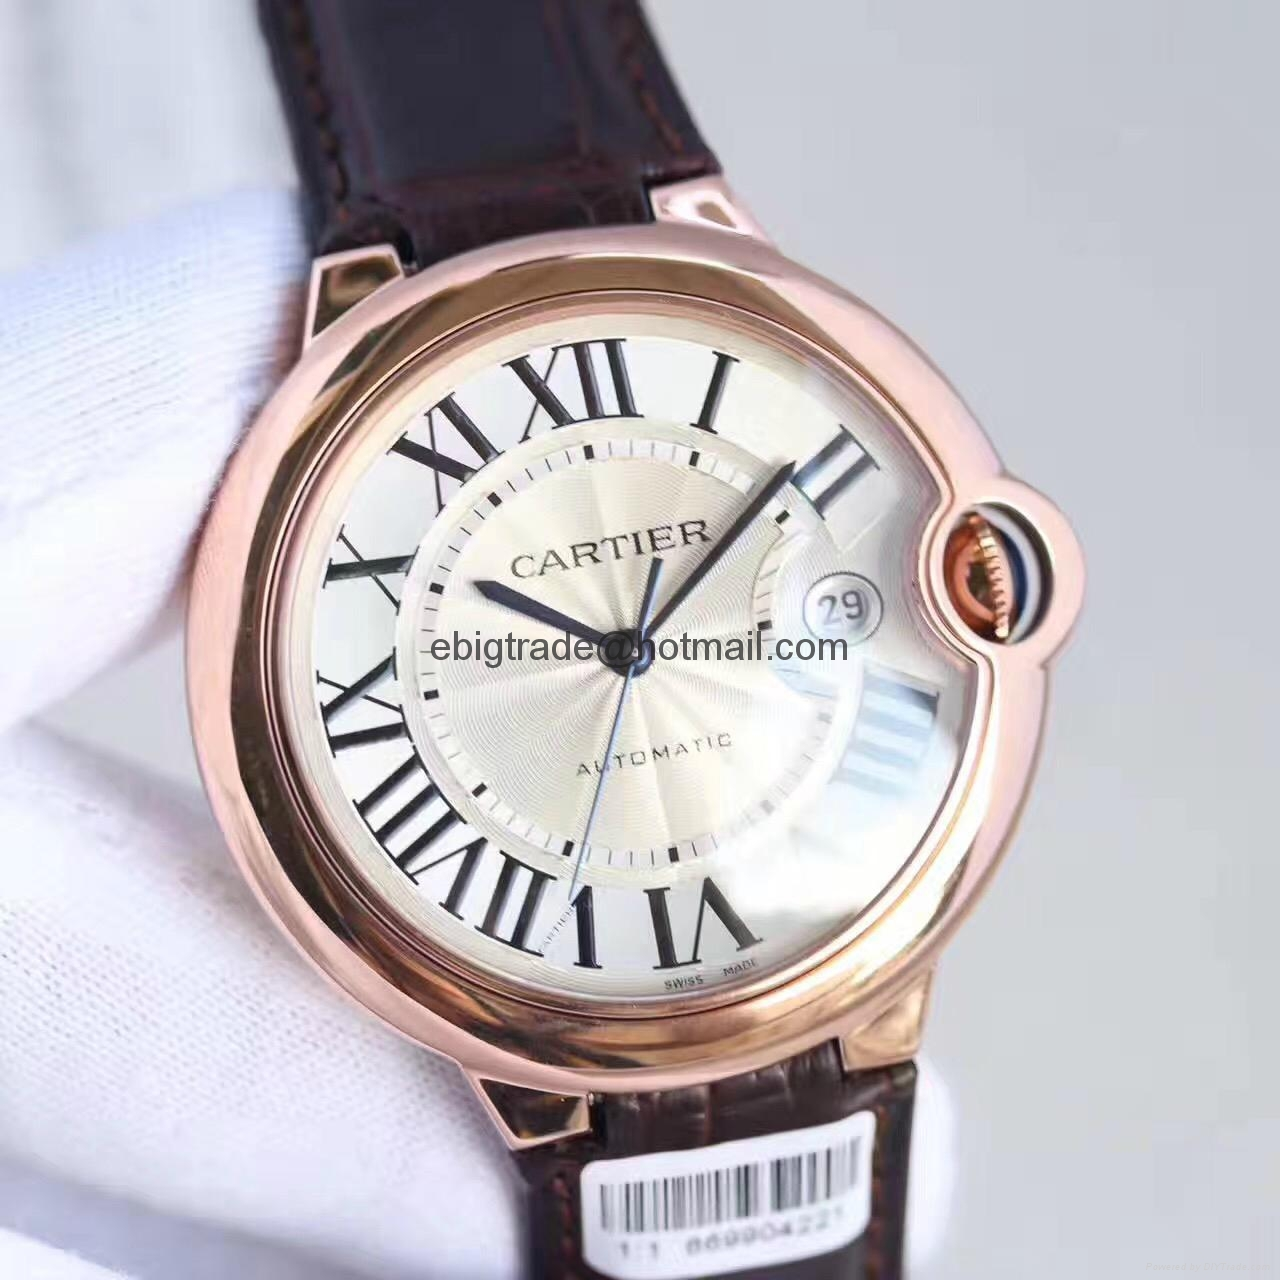 Cheap cartier watches for men cartier watches for women ladies cartier watches china trading for Cheap watches